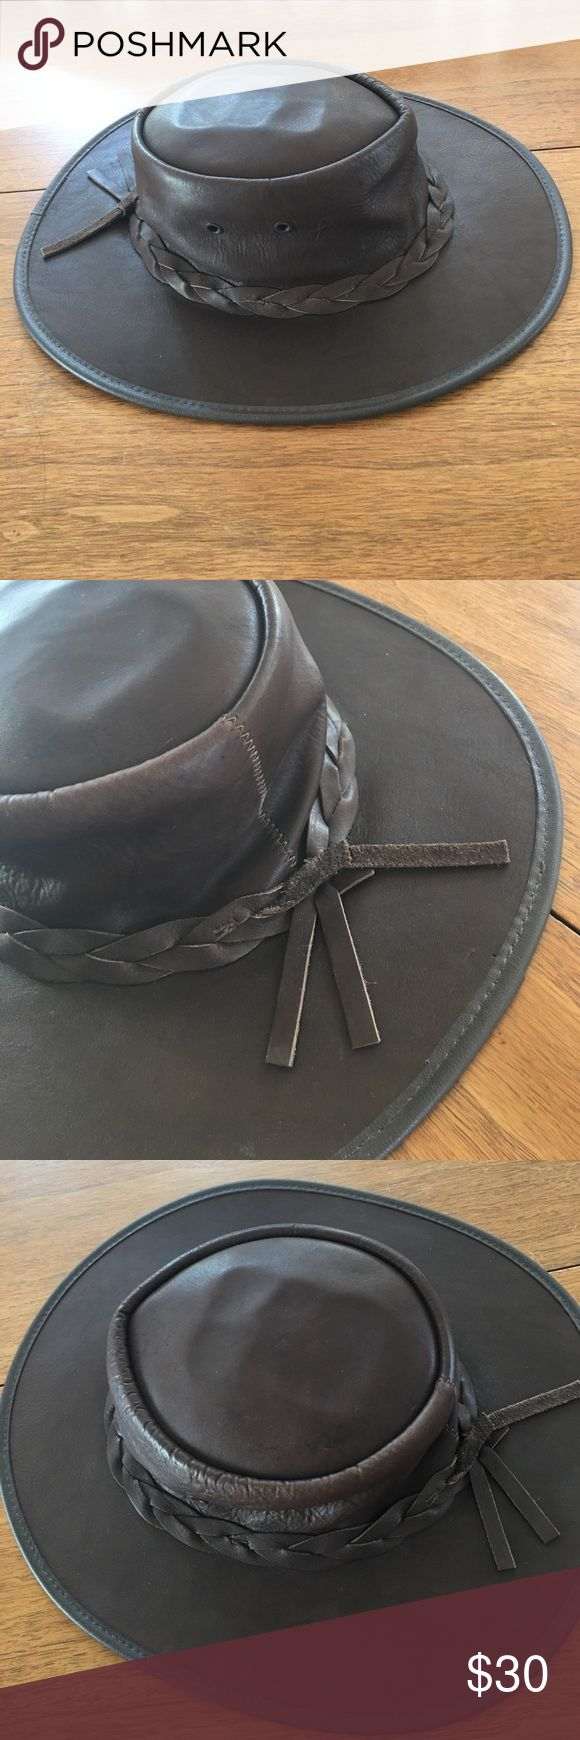 "Australian Hat by Barmah Hats This is a genuine Aussie Outback hat for sure, made in Australia!   It's ""fullgrain"" leather and waterproof.  It's in beautiful shape and a perfect addition to any hat lover's collection. Great braided detail and by crickey, this is an awesome deal! Barmah Hats Accessories Hats"